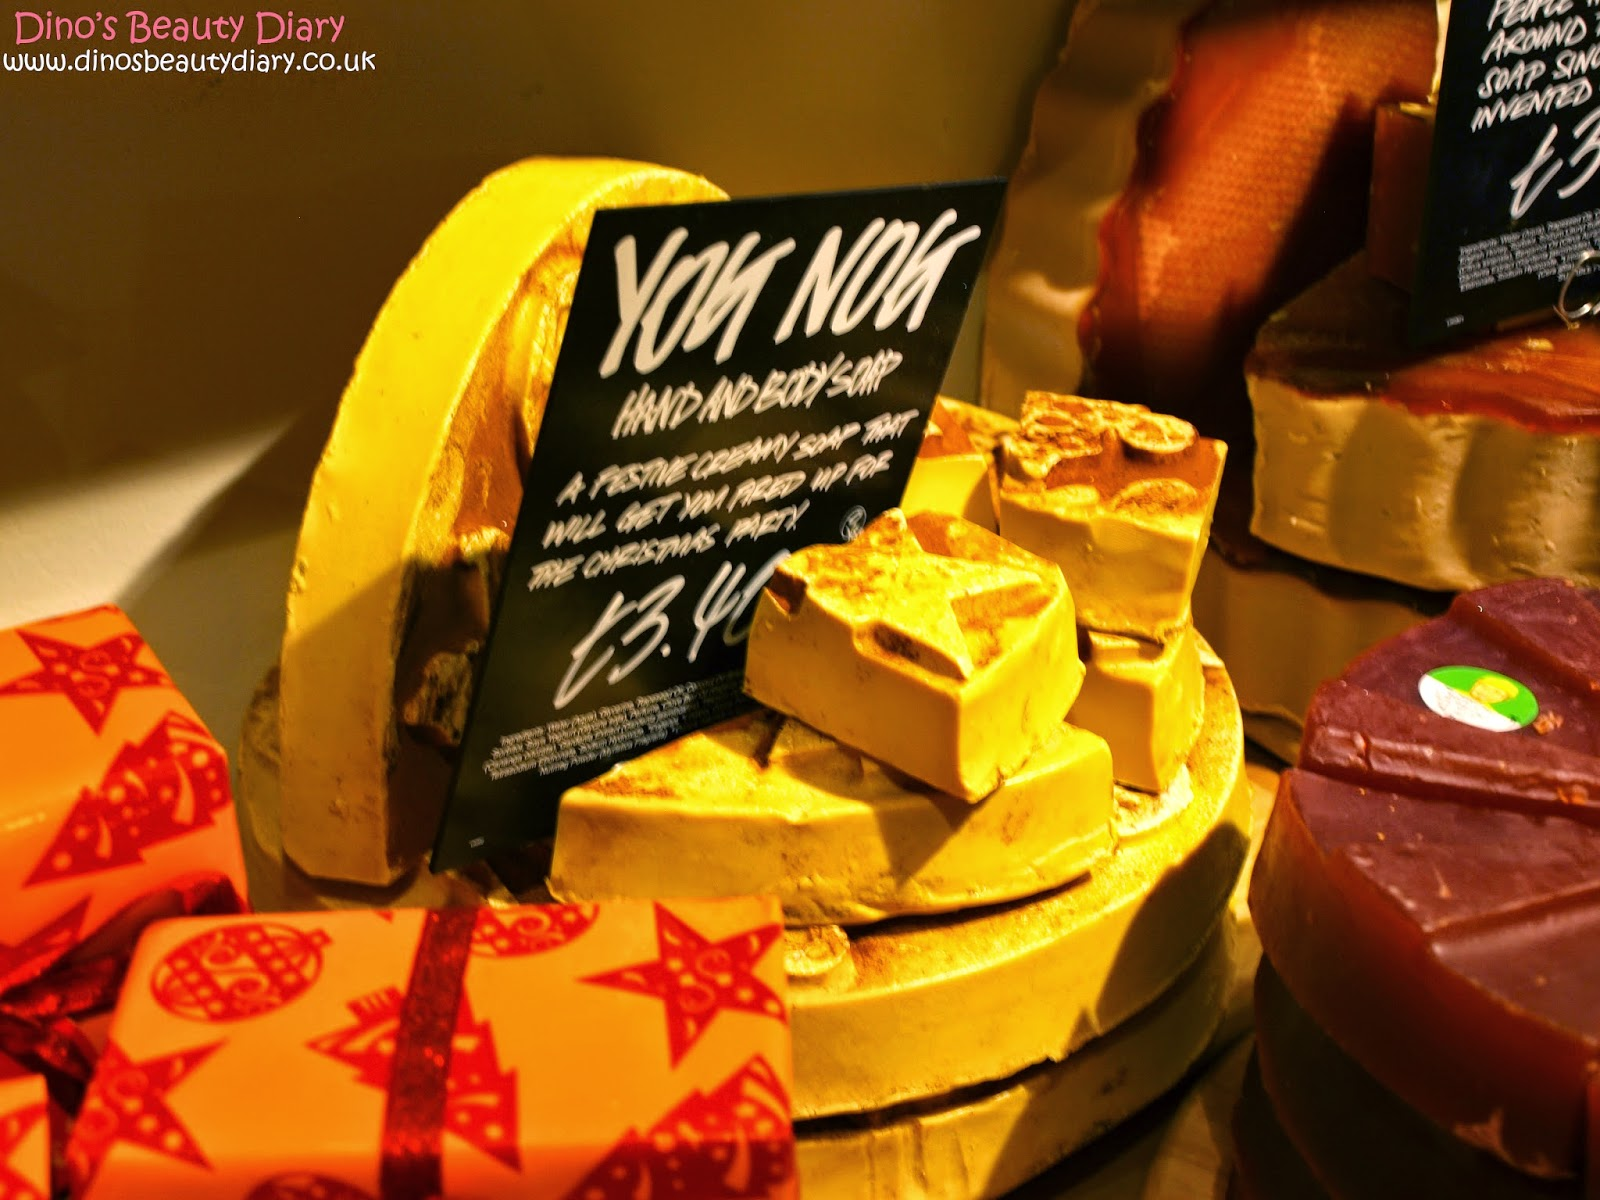 Dino's Beauty Diary - Lush Nottingham Bloggers Event - yog nog soap